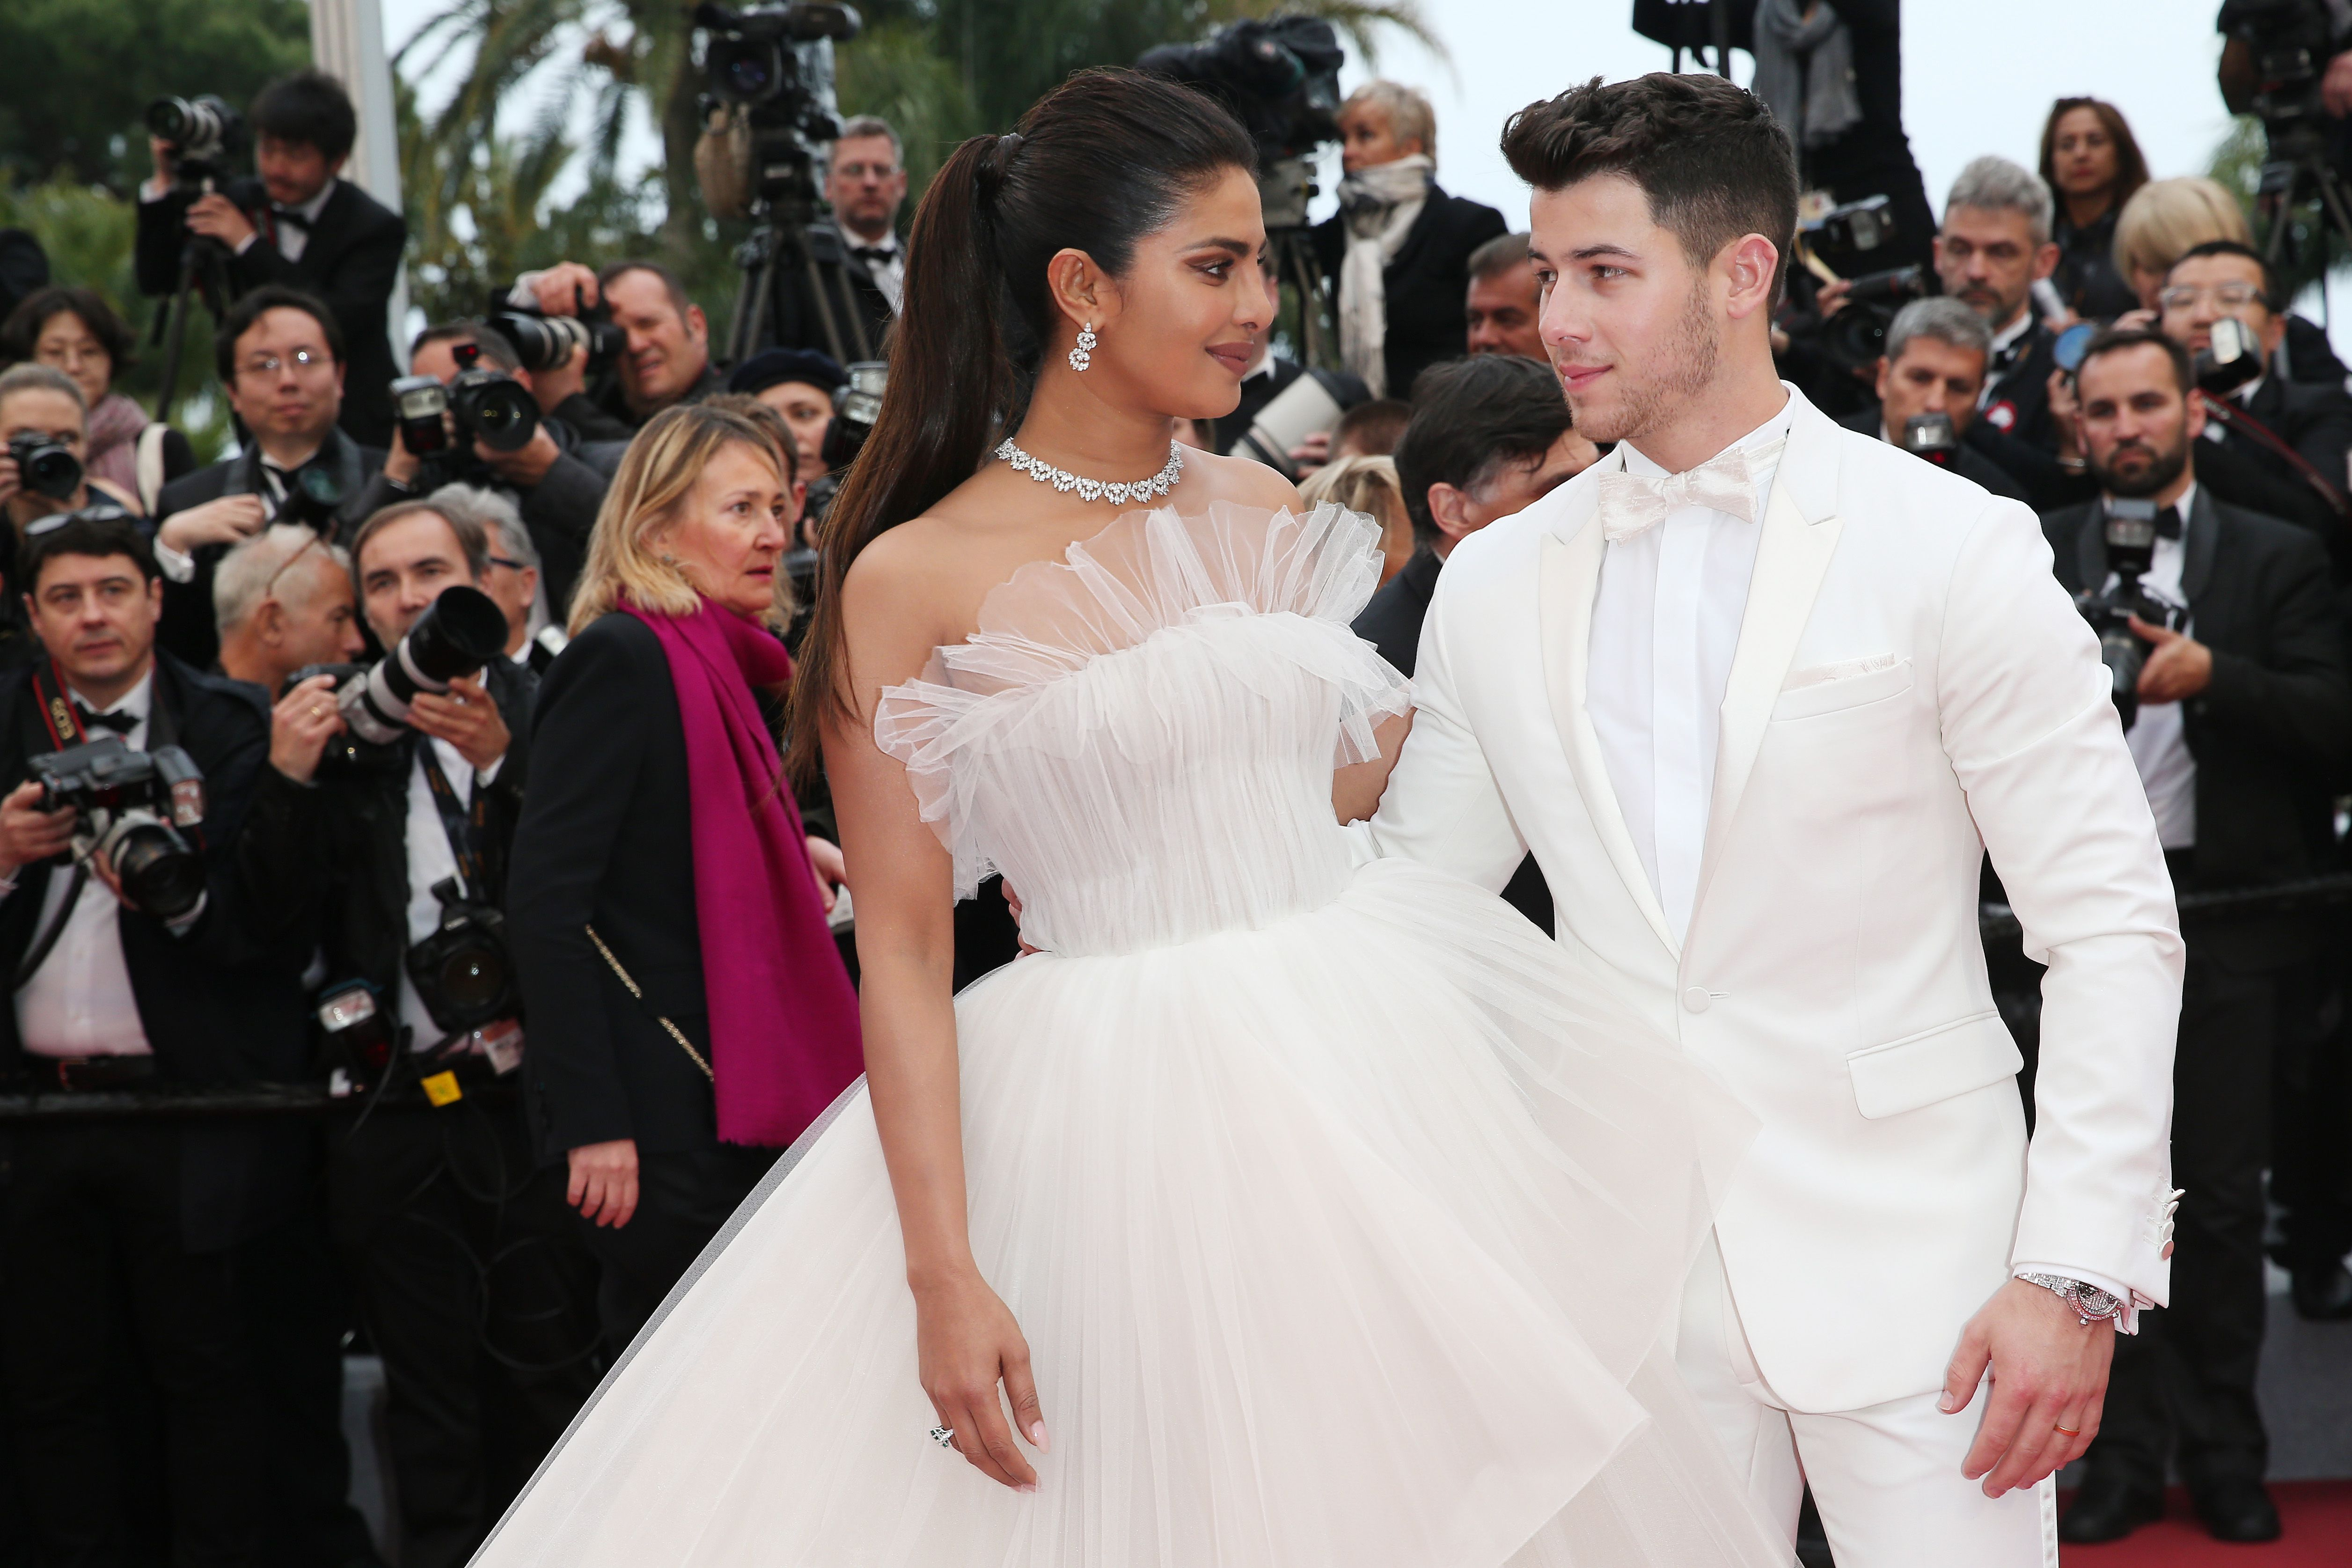 Priyanka Chopra on How Nick Jonas Has Changed the Way She Works and Why She Supported Documentary '5B' at Cannes